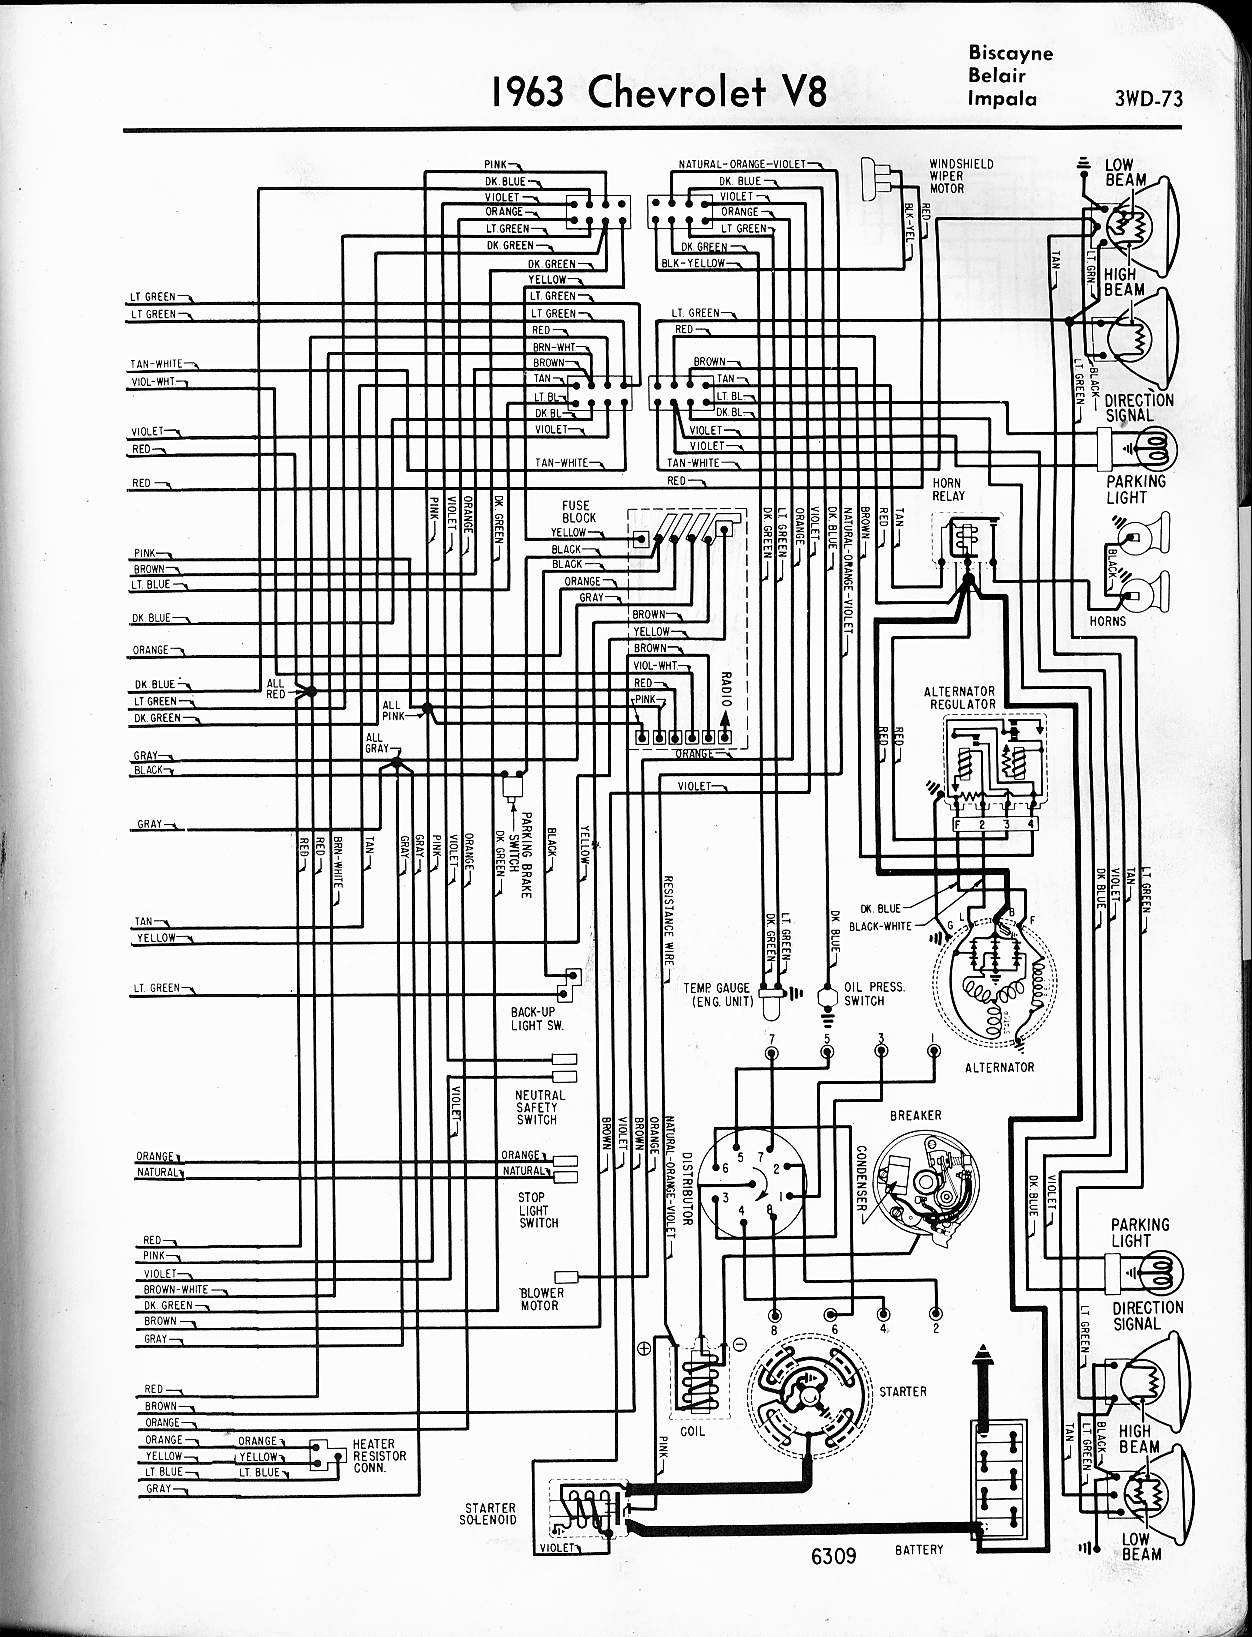 64 C10 Underhood Wiring Diagram Golden Schematic Fuel Pump Diagrams Of 1964 Ford B F And T Series Trucks 65